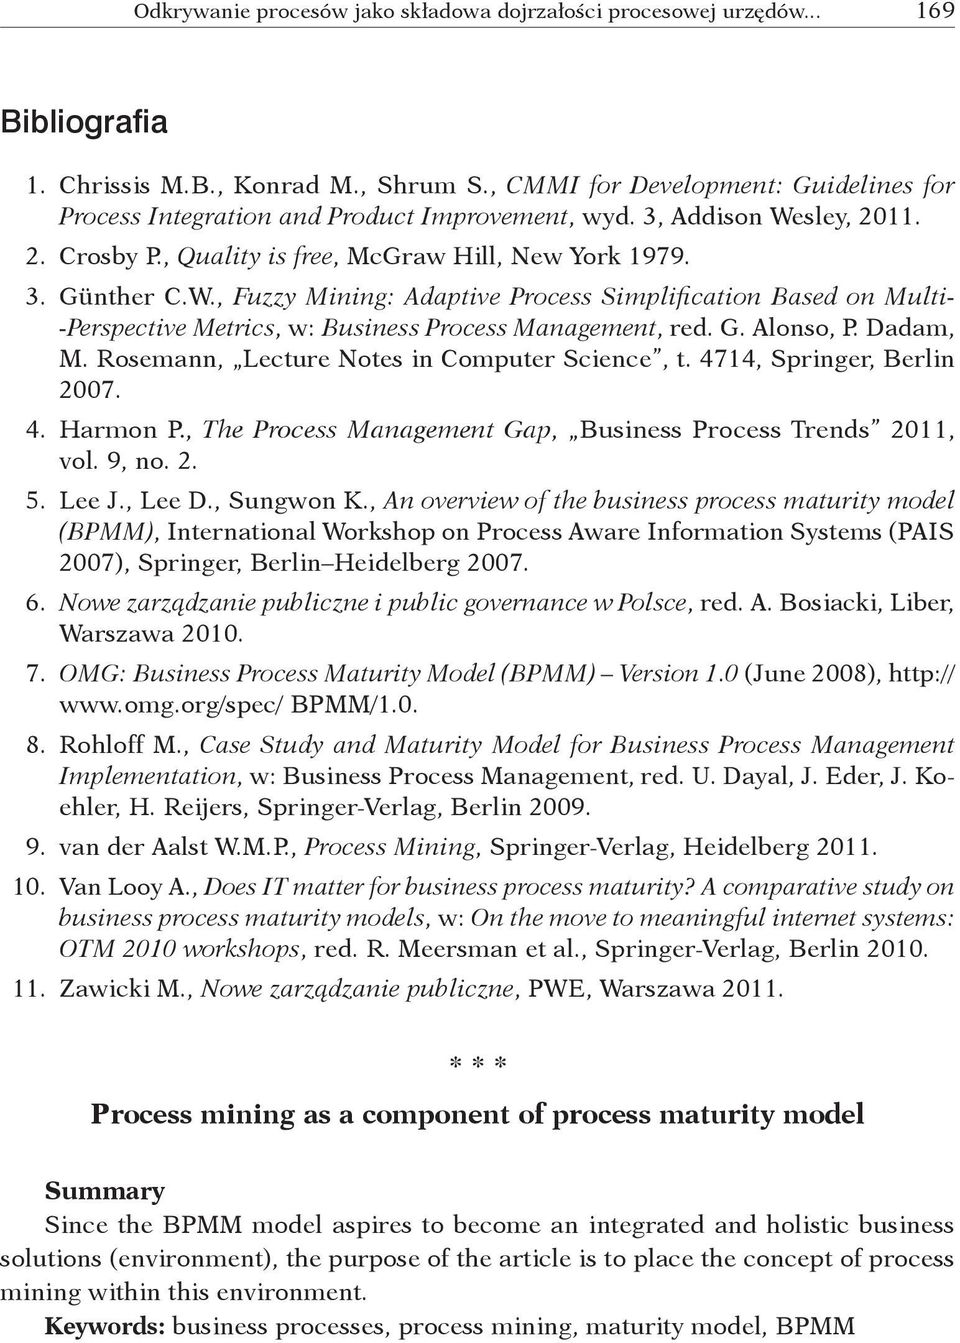 Dadam, M. Rosemann, Lecture Notes in Computer Science, t. 4714, Springer, Berlin 2007. 4. Harmon P., The Process Management Gap, Business Process Trends 2011, vol. 9, no. 2. 5. Lee J., Lee D.